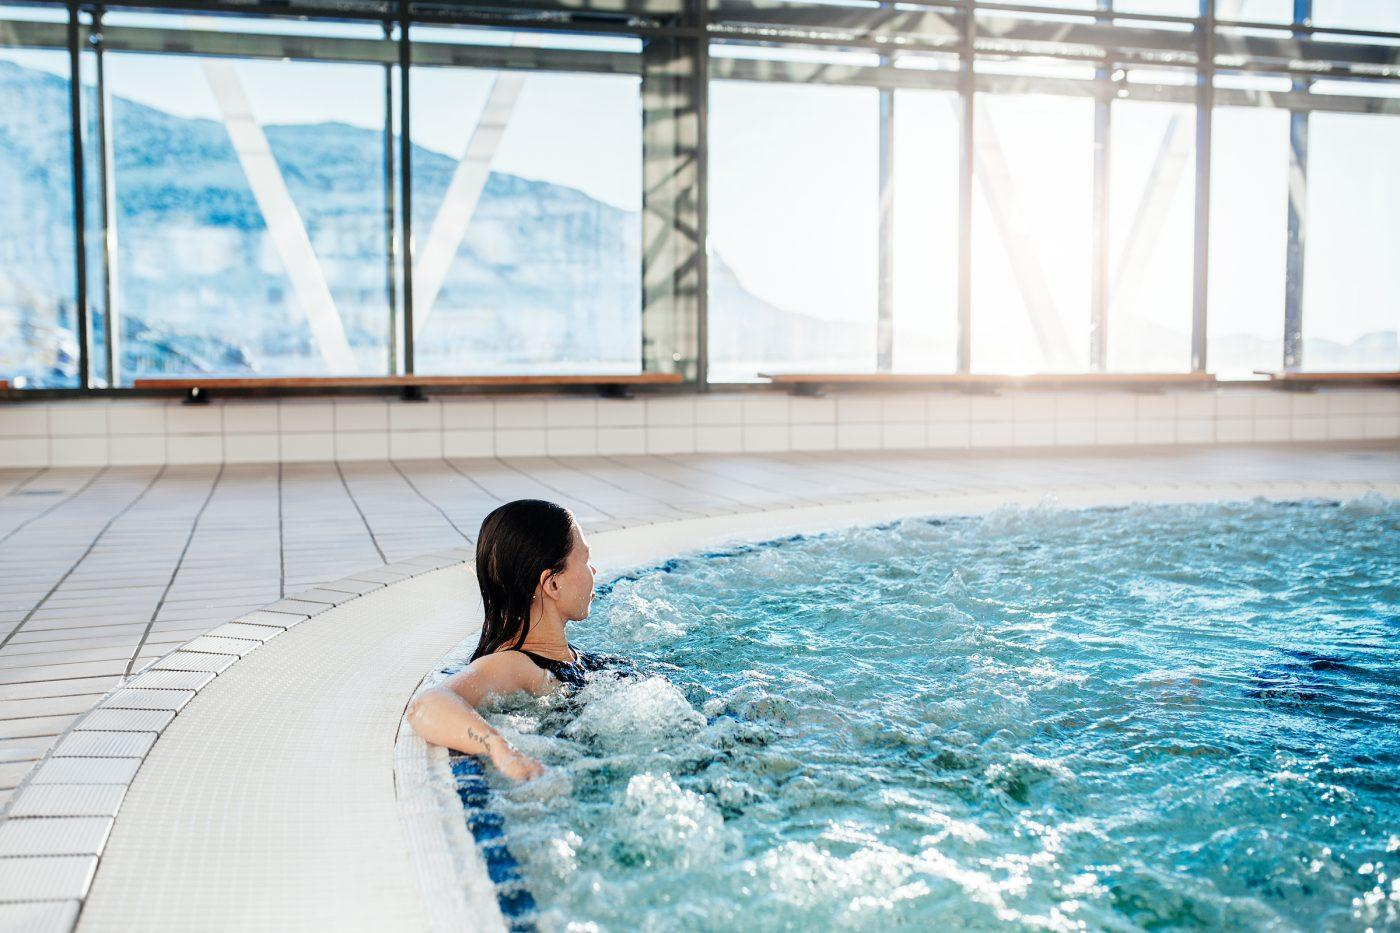 Woman relaxing in the bubble bath in the indoor swimming pool Malik in Nuuk in Greenland. by Rebecca Gustafsson - Visit Greenland